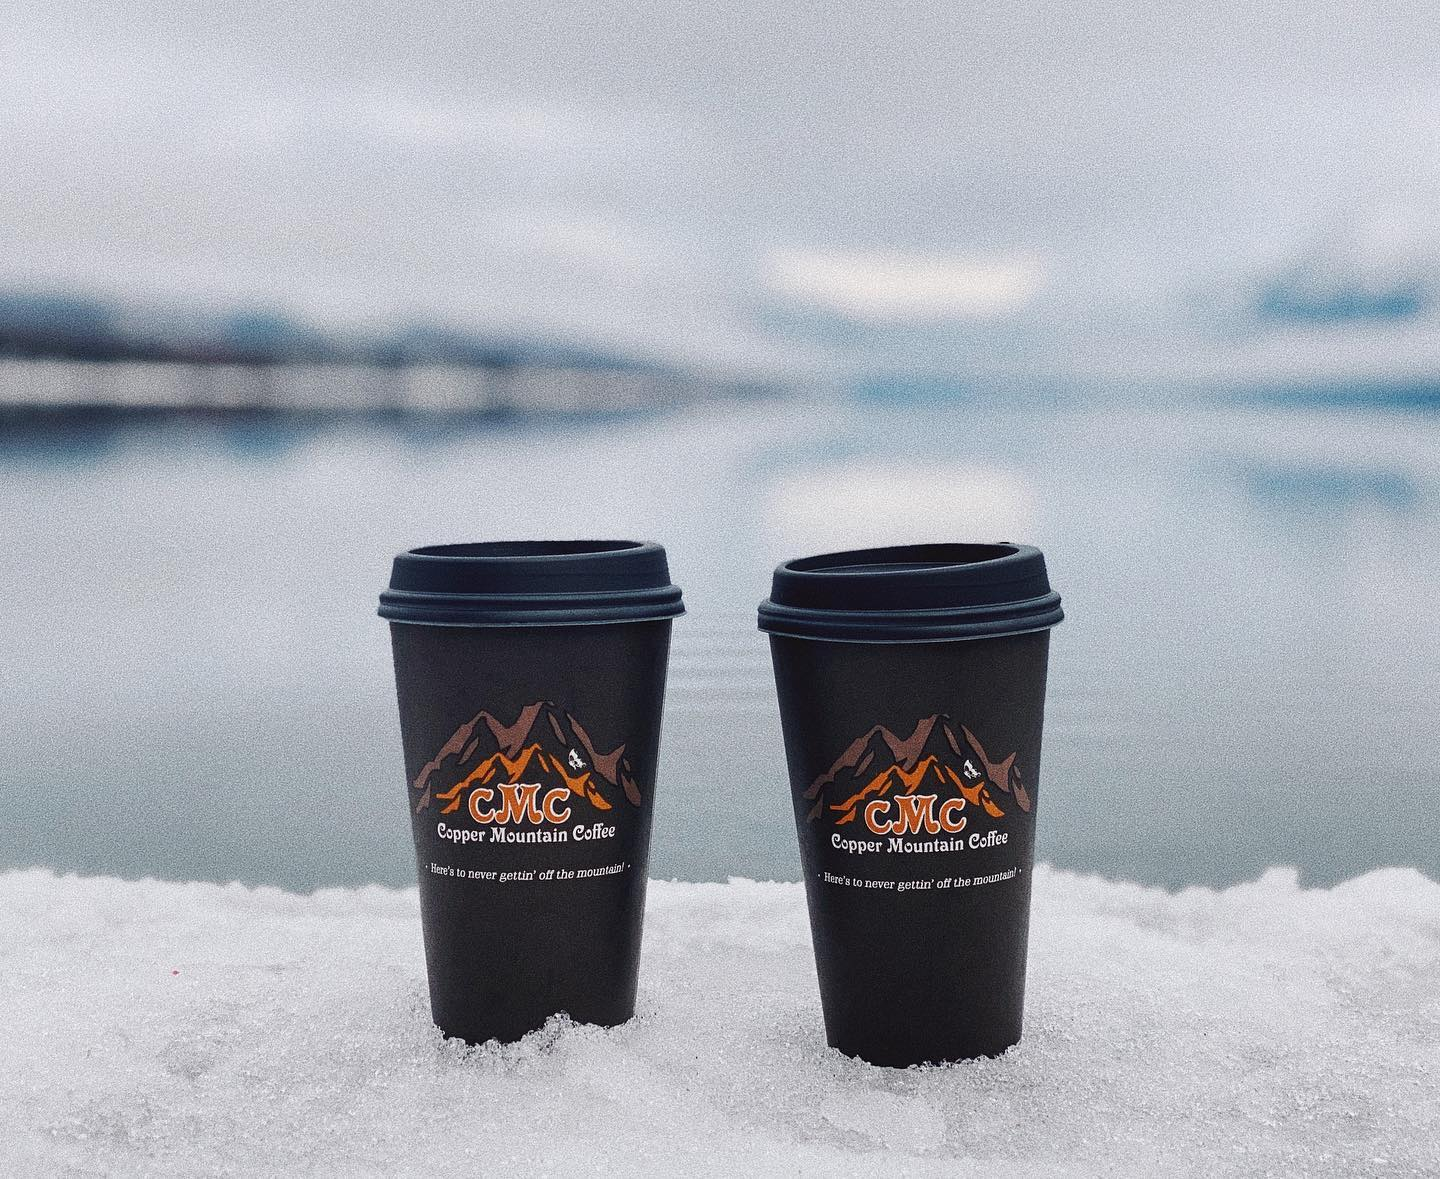 Copper Mountain Coffee, Montana | Cups with MT scenery